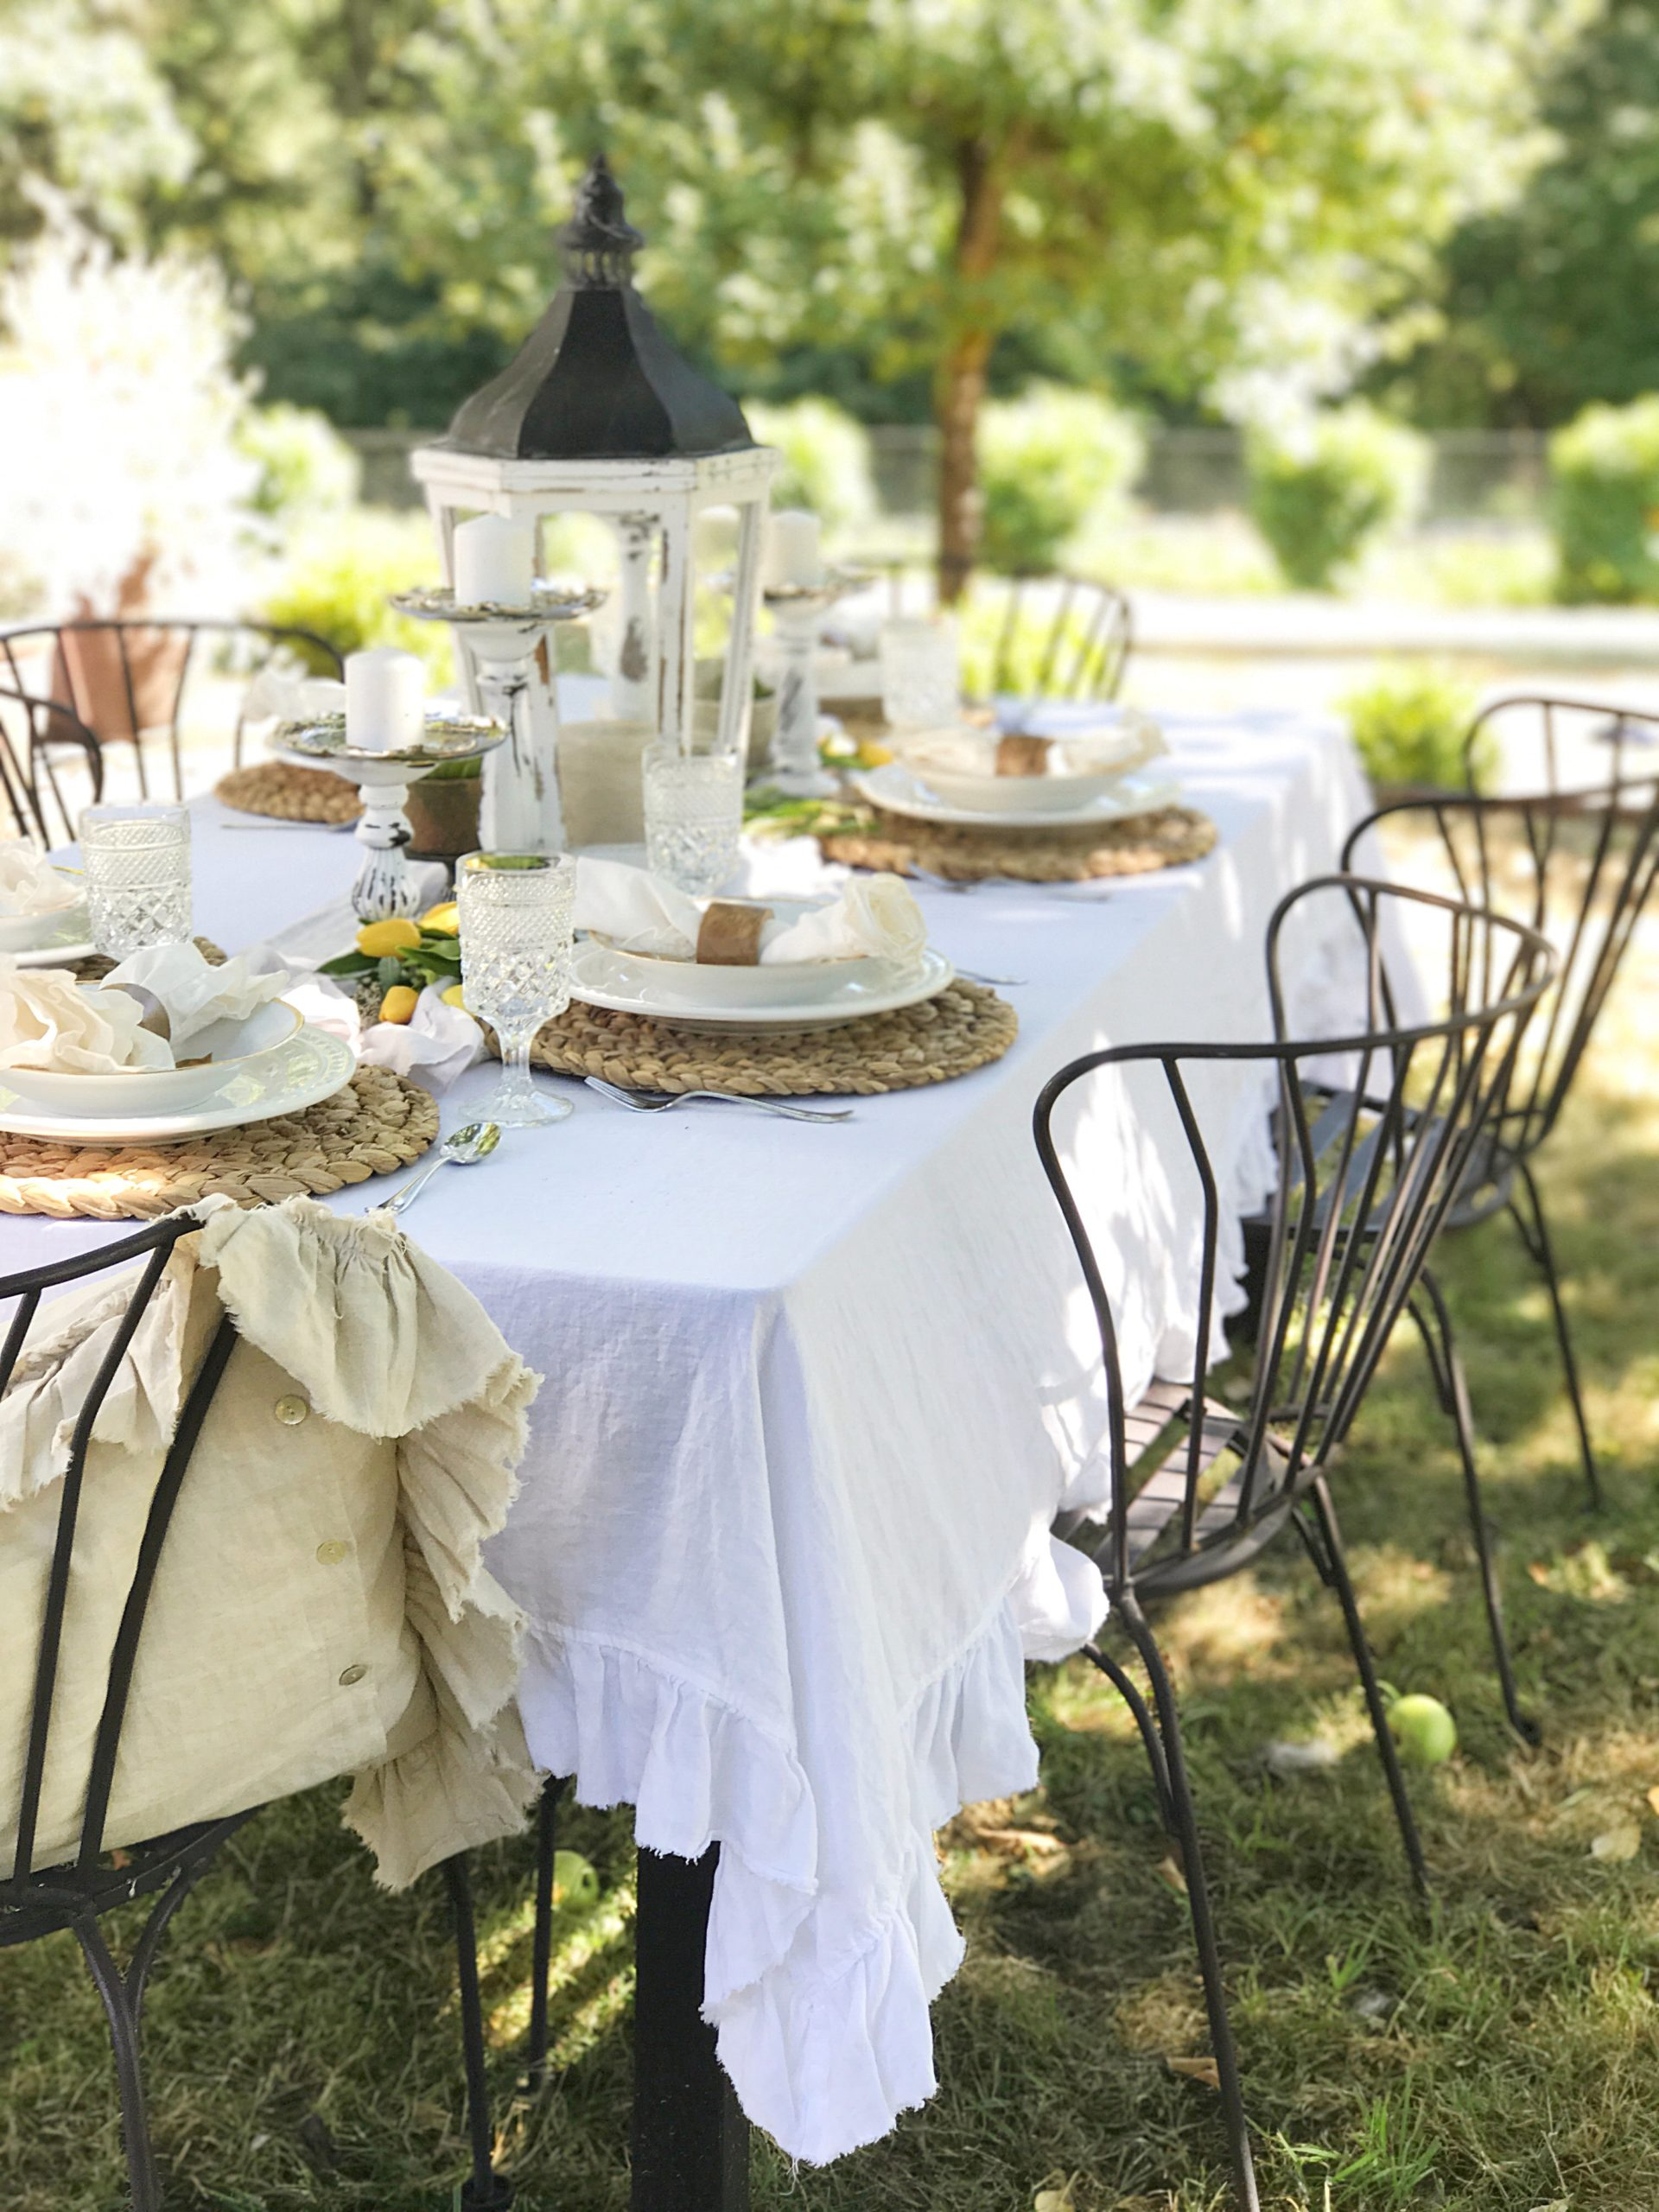 Styles and Tips for Al Fresco Summer Dining